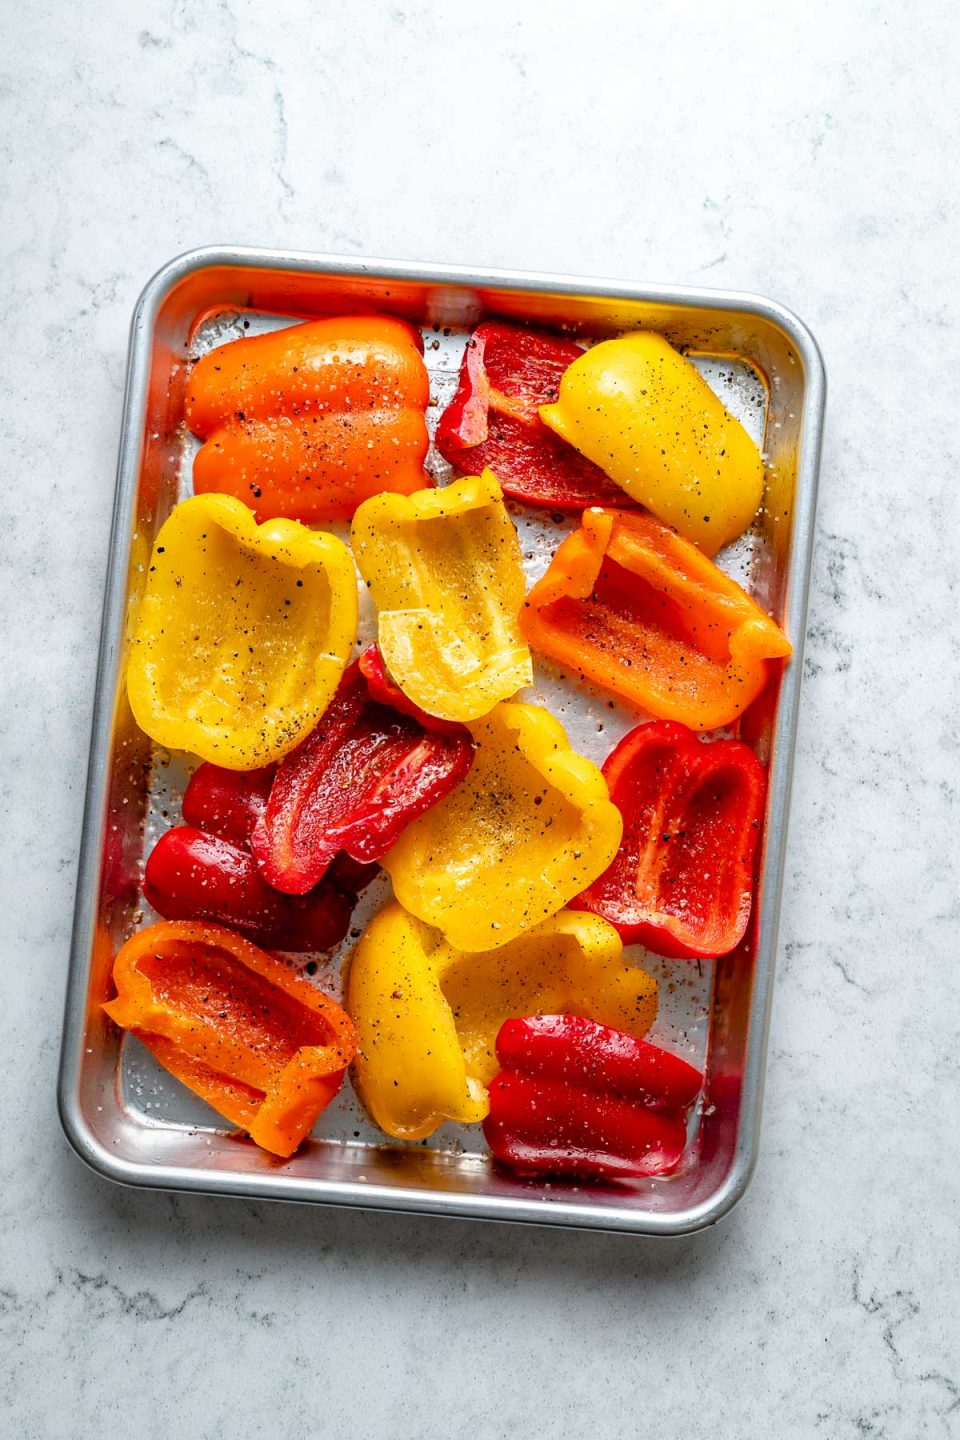 Multiple slices of fresh & raw yellow, orange, & red bell peppers seasoned with avocado oil, kosher salt, & ground black pepper arranged on an aluminum baking sheet. The baking sheet sits on top of a white & gray marble surface.